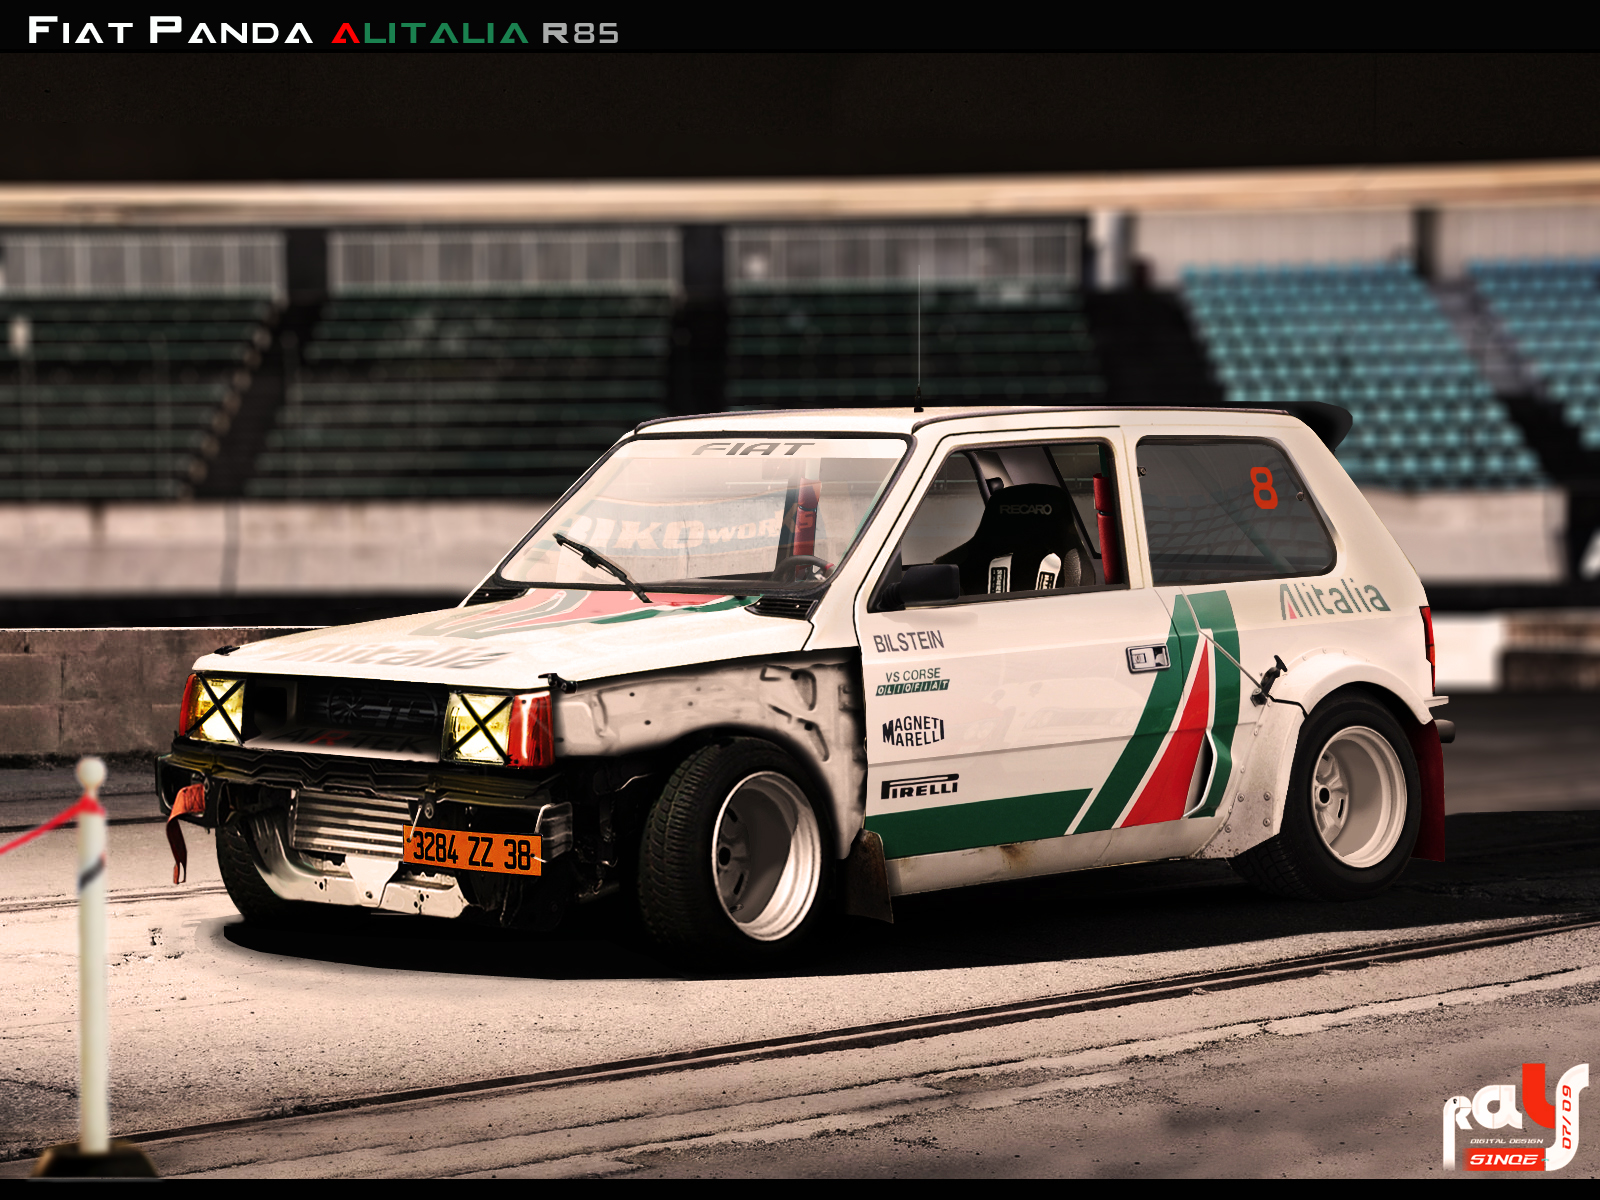 Tuning Fiat Panda Alitalia The Fiat Forum